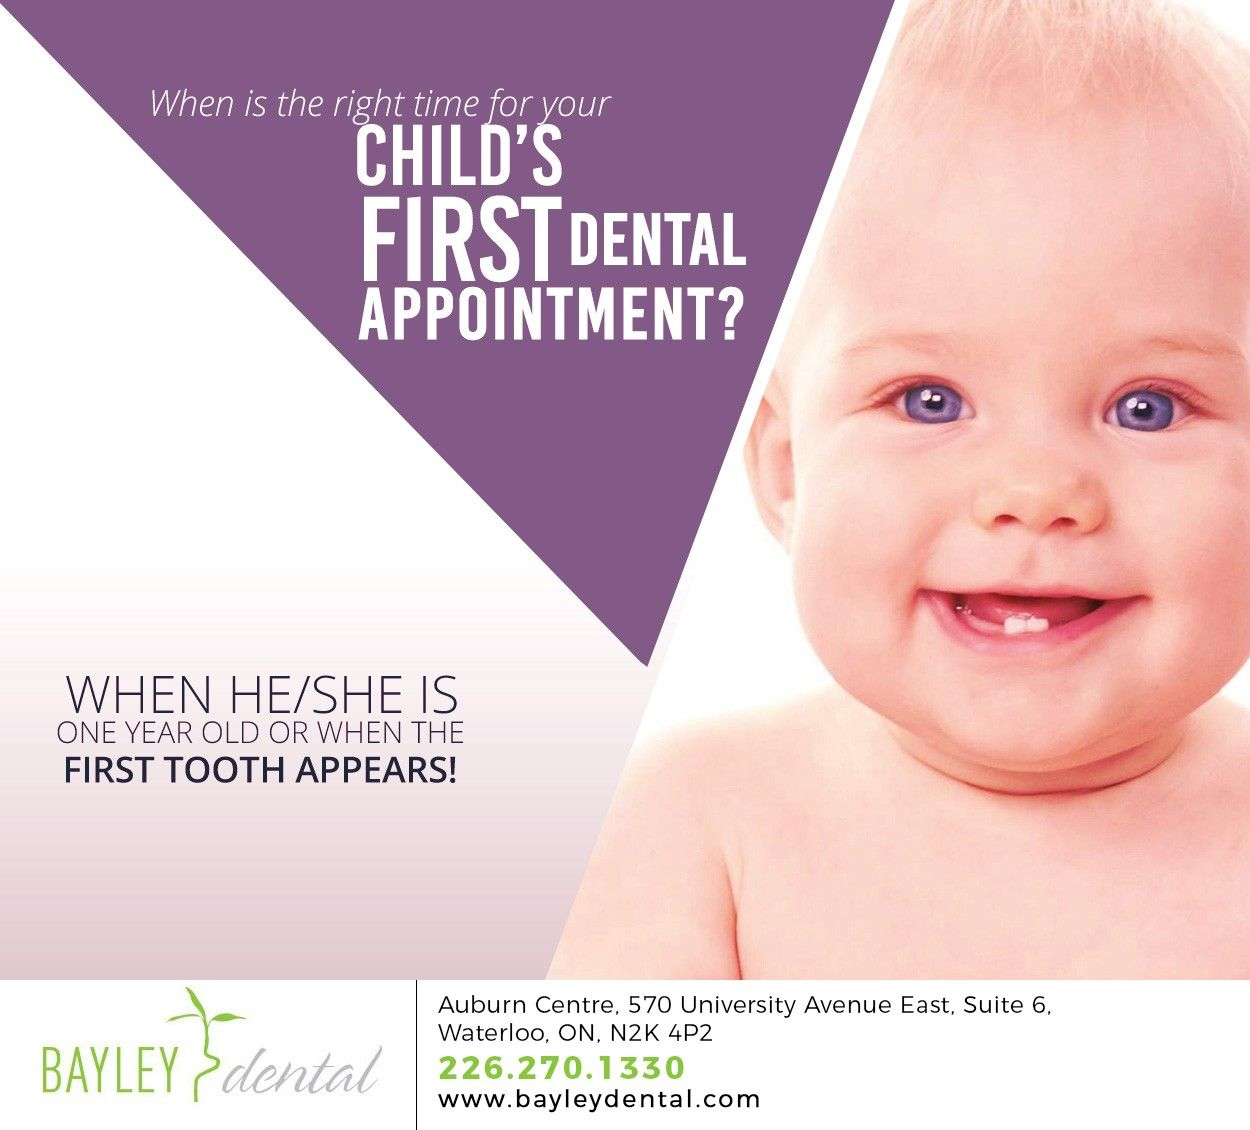 A kid's first dental visit is all about orientation